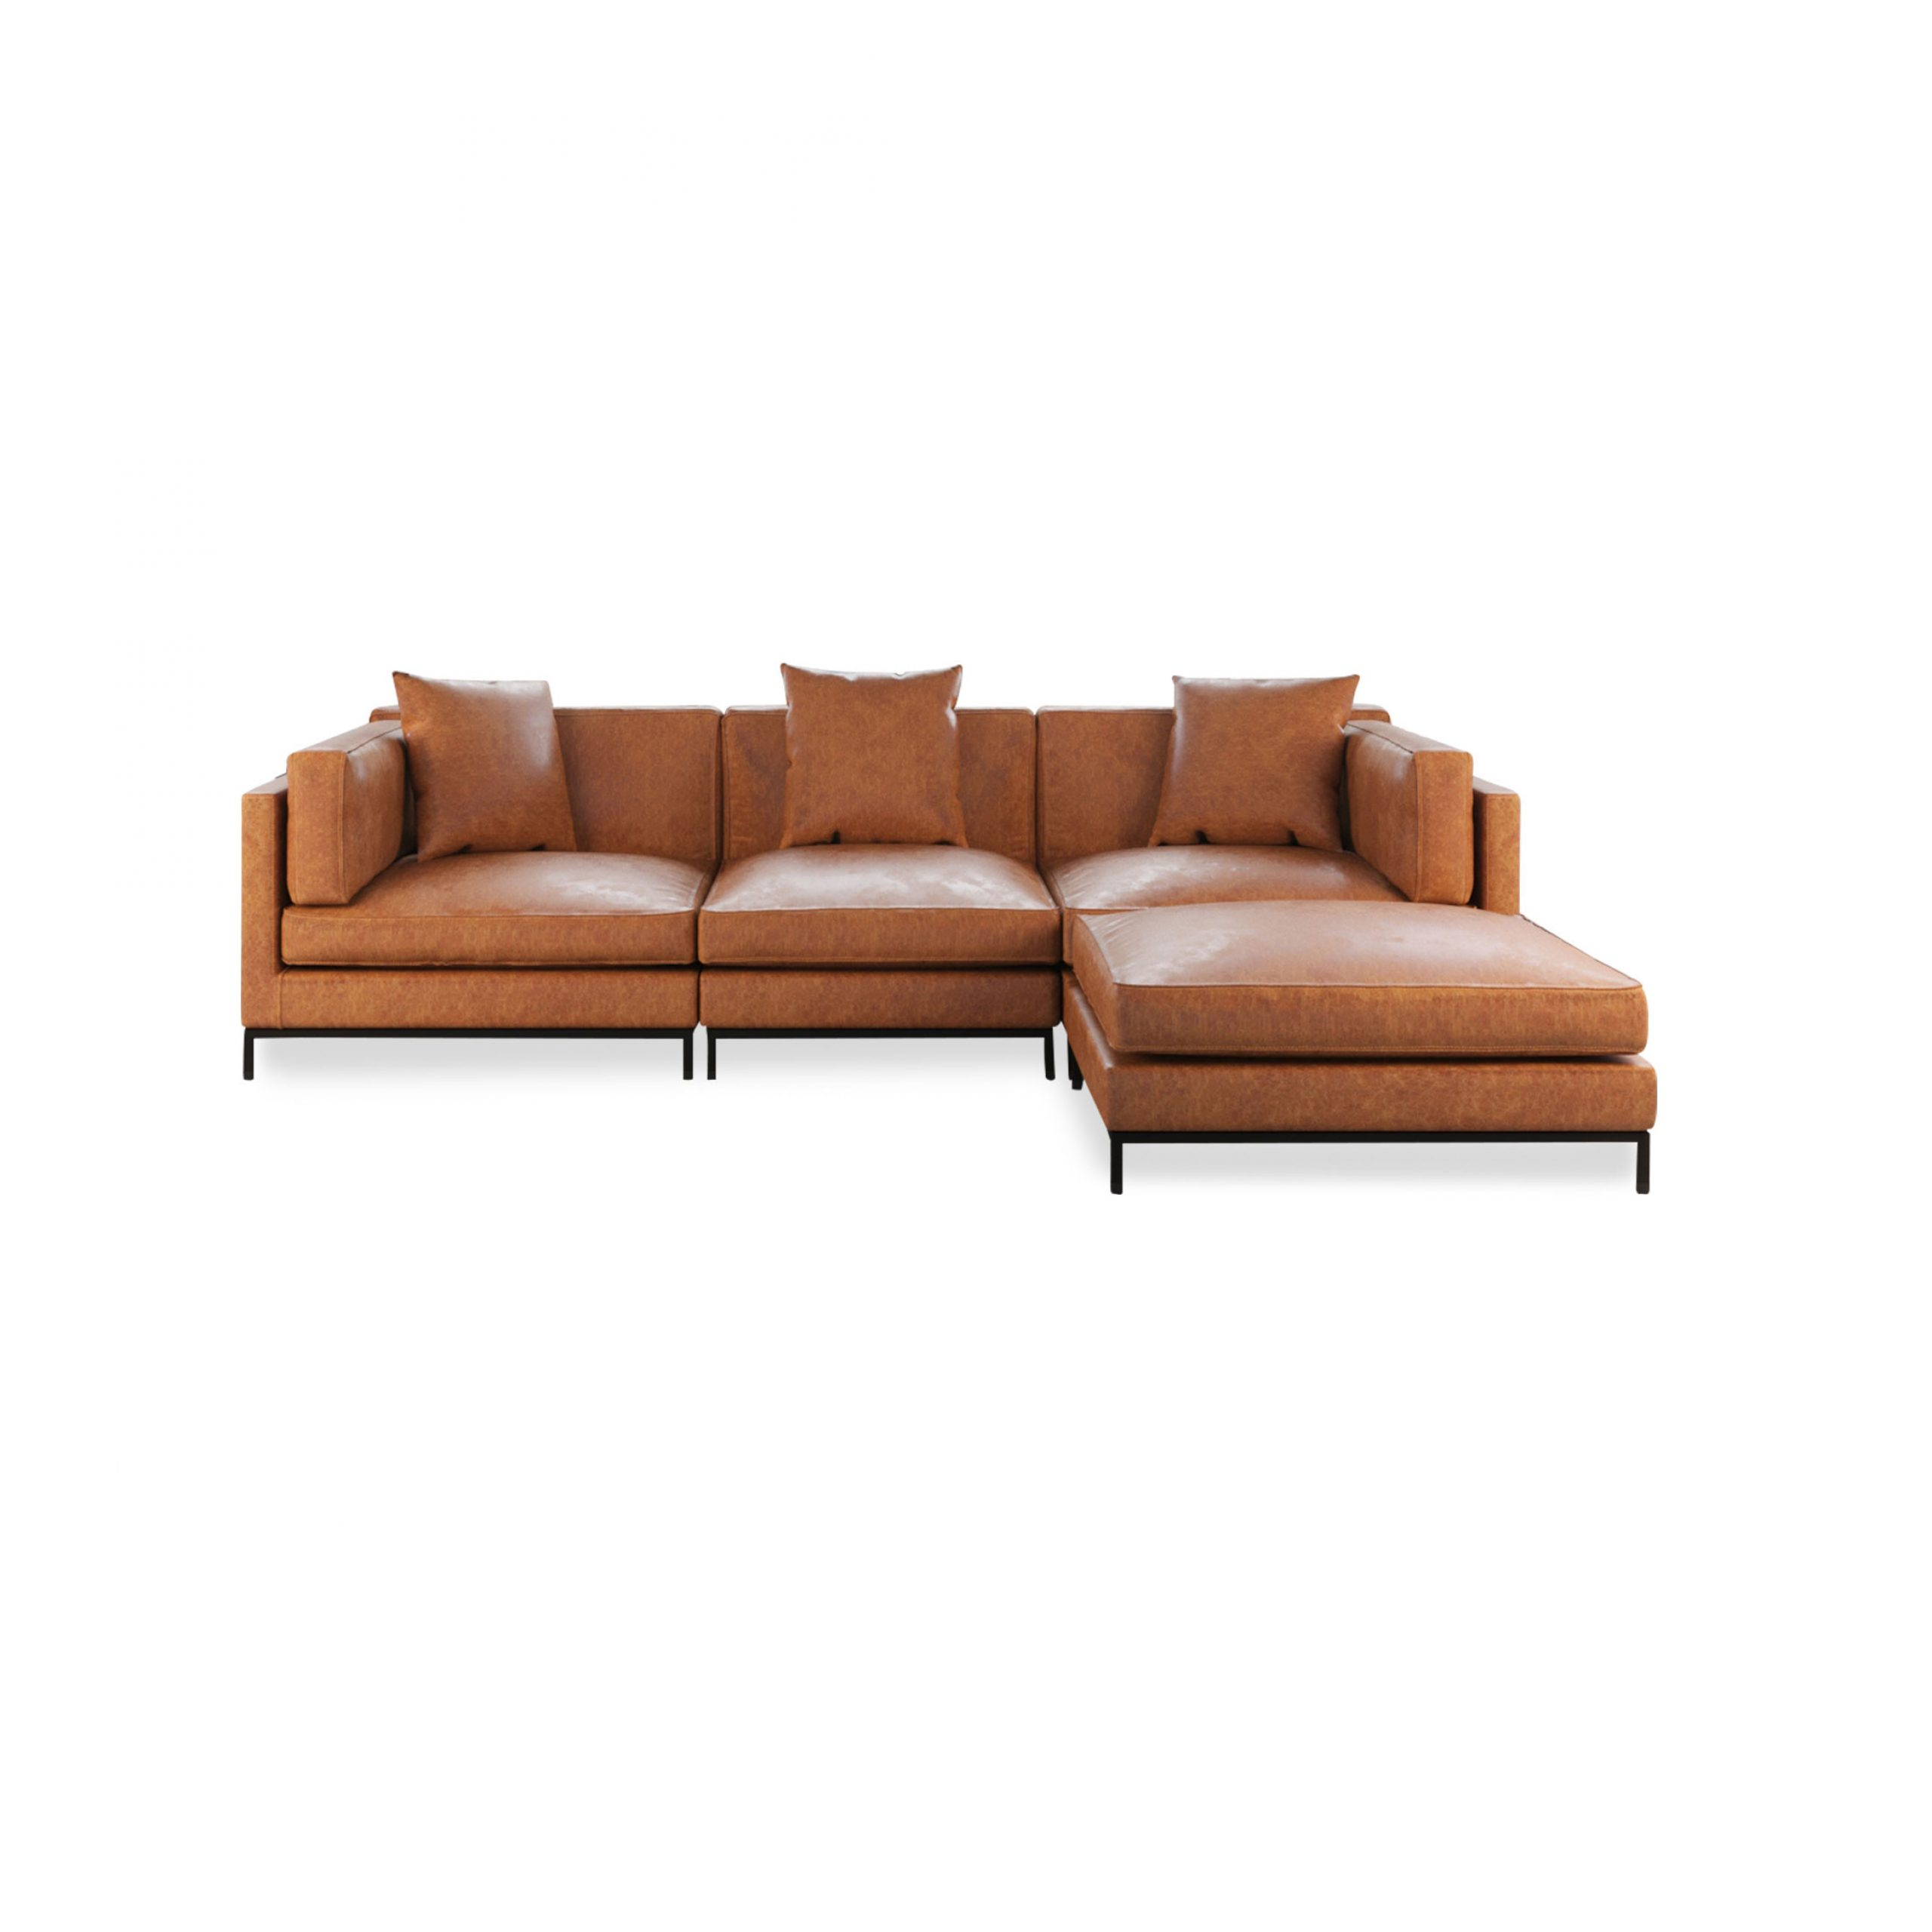 Migliore Sectional – Best Leather Or Fabric Modular Sofa Regarding Most Up To Date Paul Modular Sectional Sofas Blue (View 8 of 25)